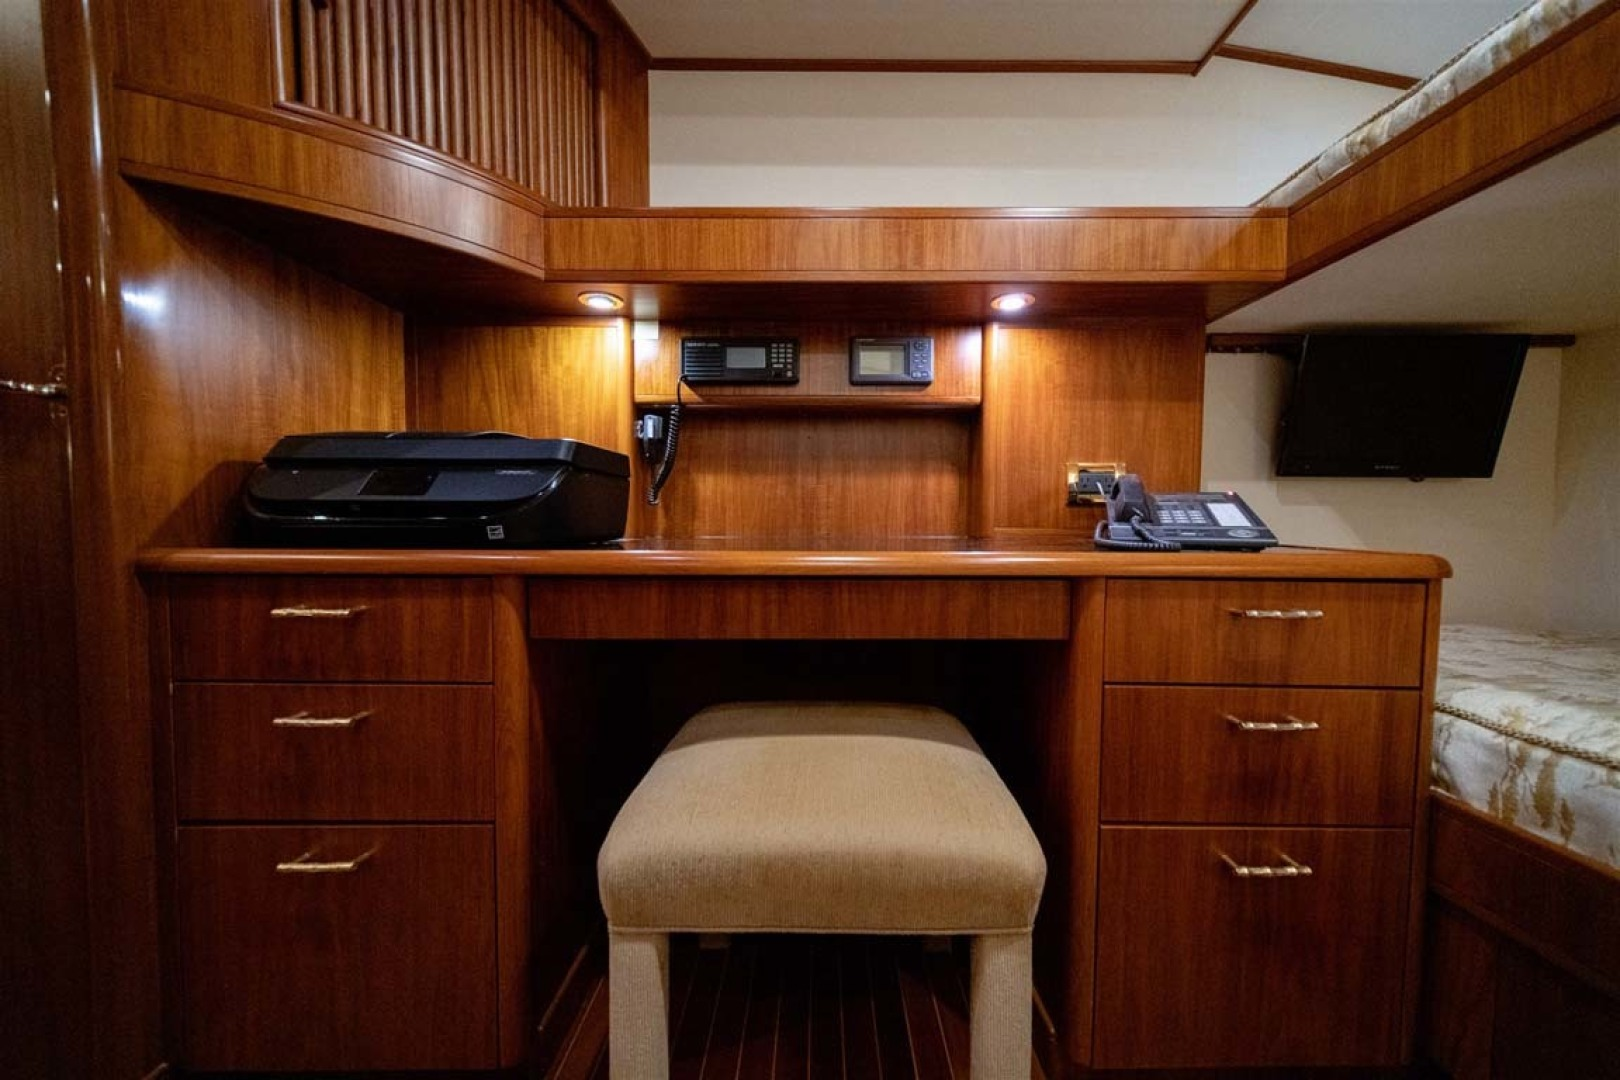 Jim Smith-Convertible 2006-Silky North Palm Beach-Florida-United States-Crew Stateroom with Large Desk/Office Area-1517015 | Thumbnail